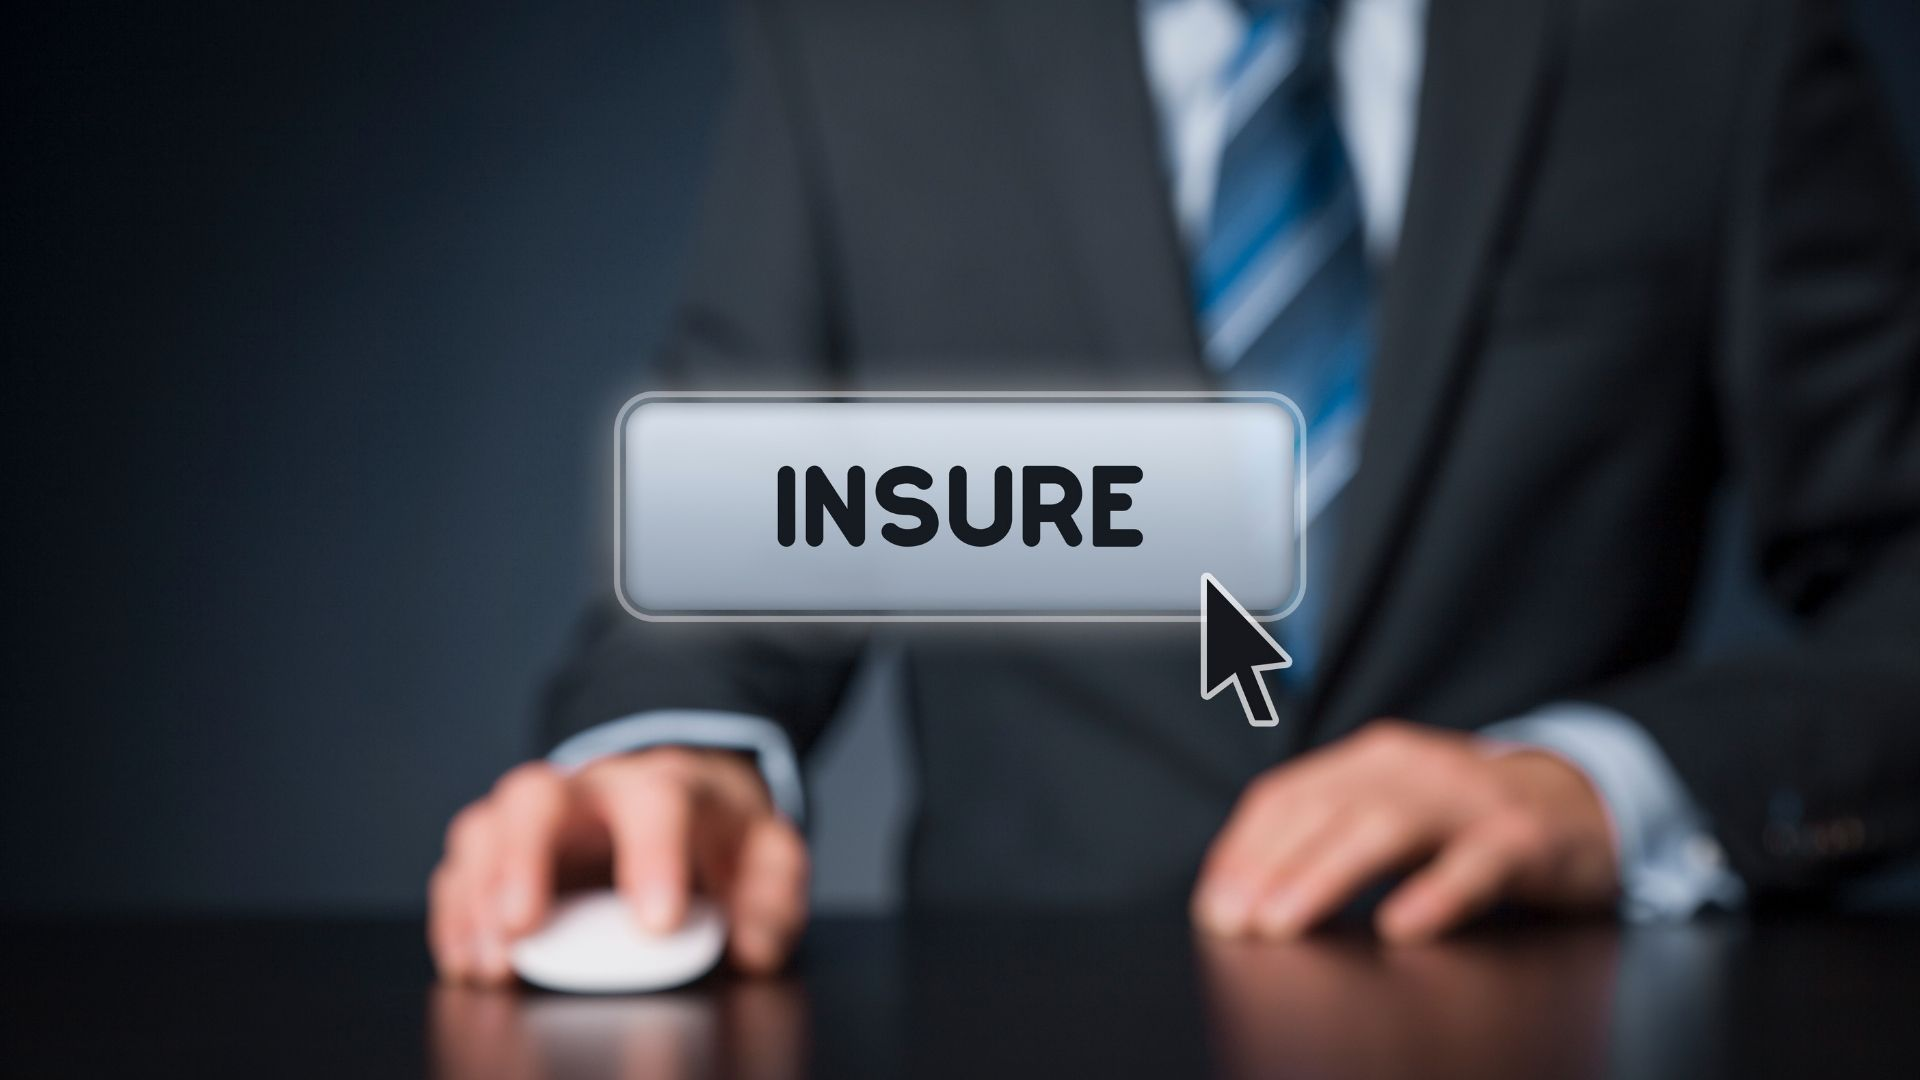 It is time insurers act smart, by making legacy systems a thing of the past 35